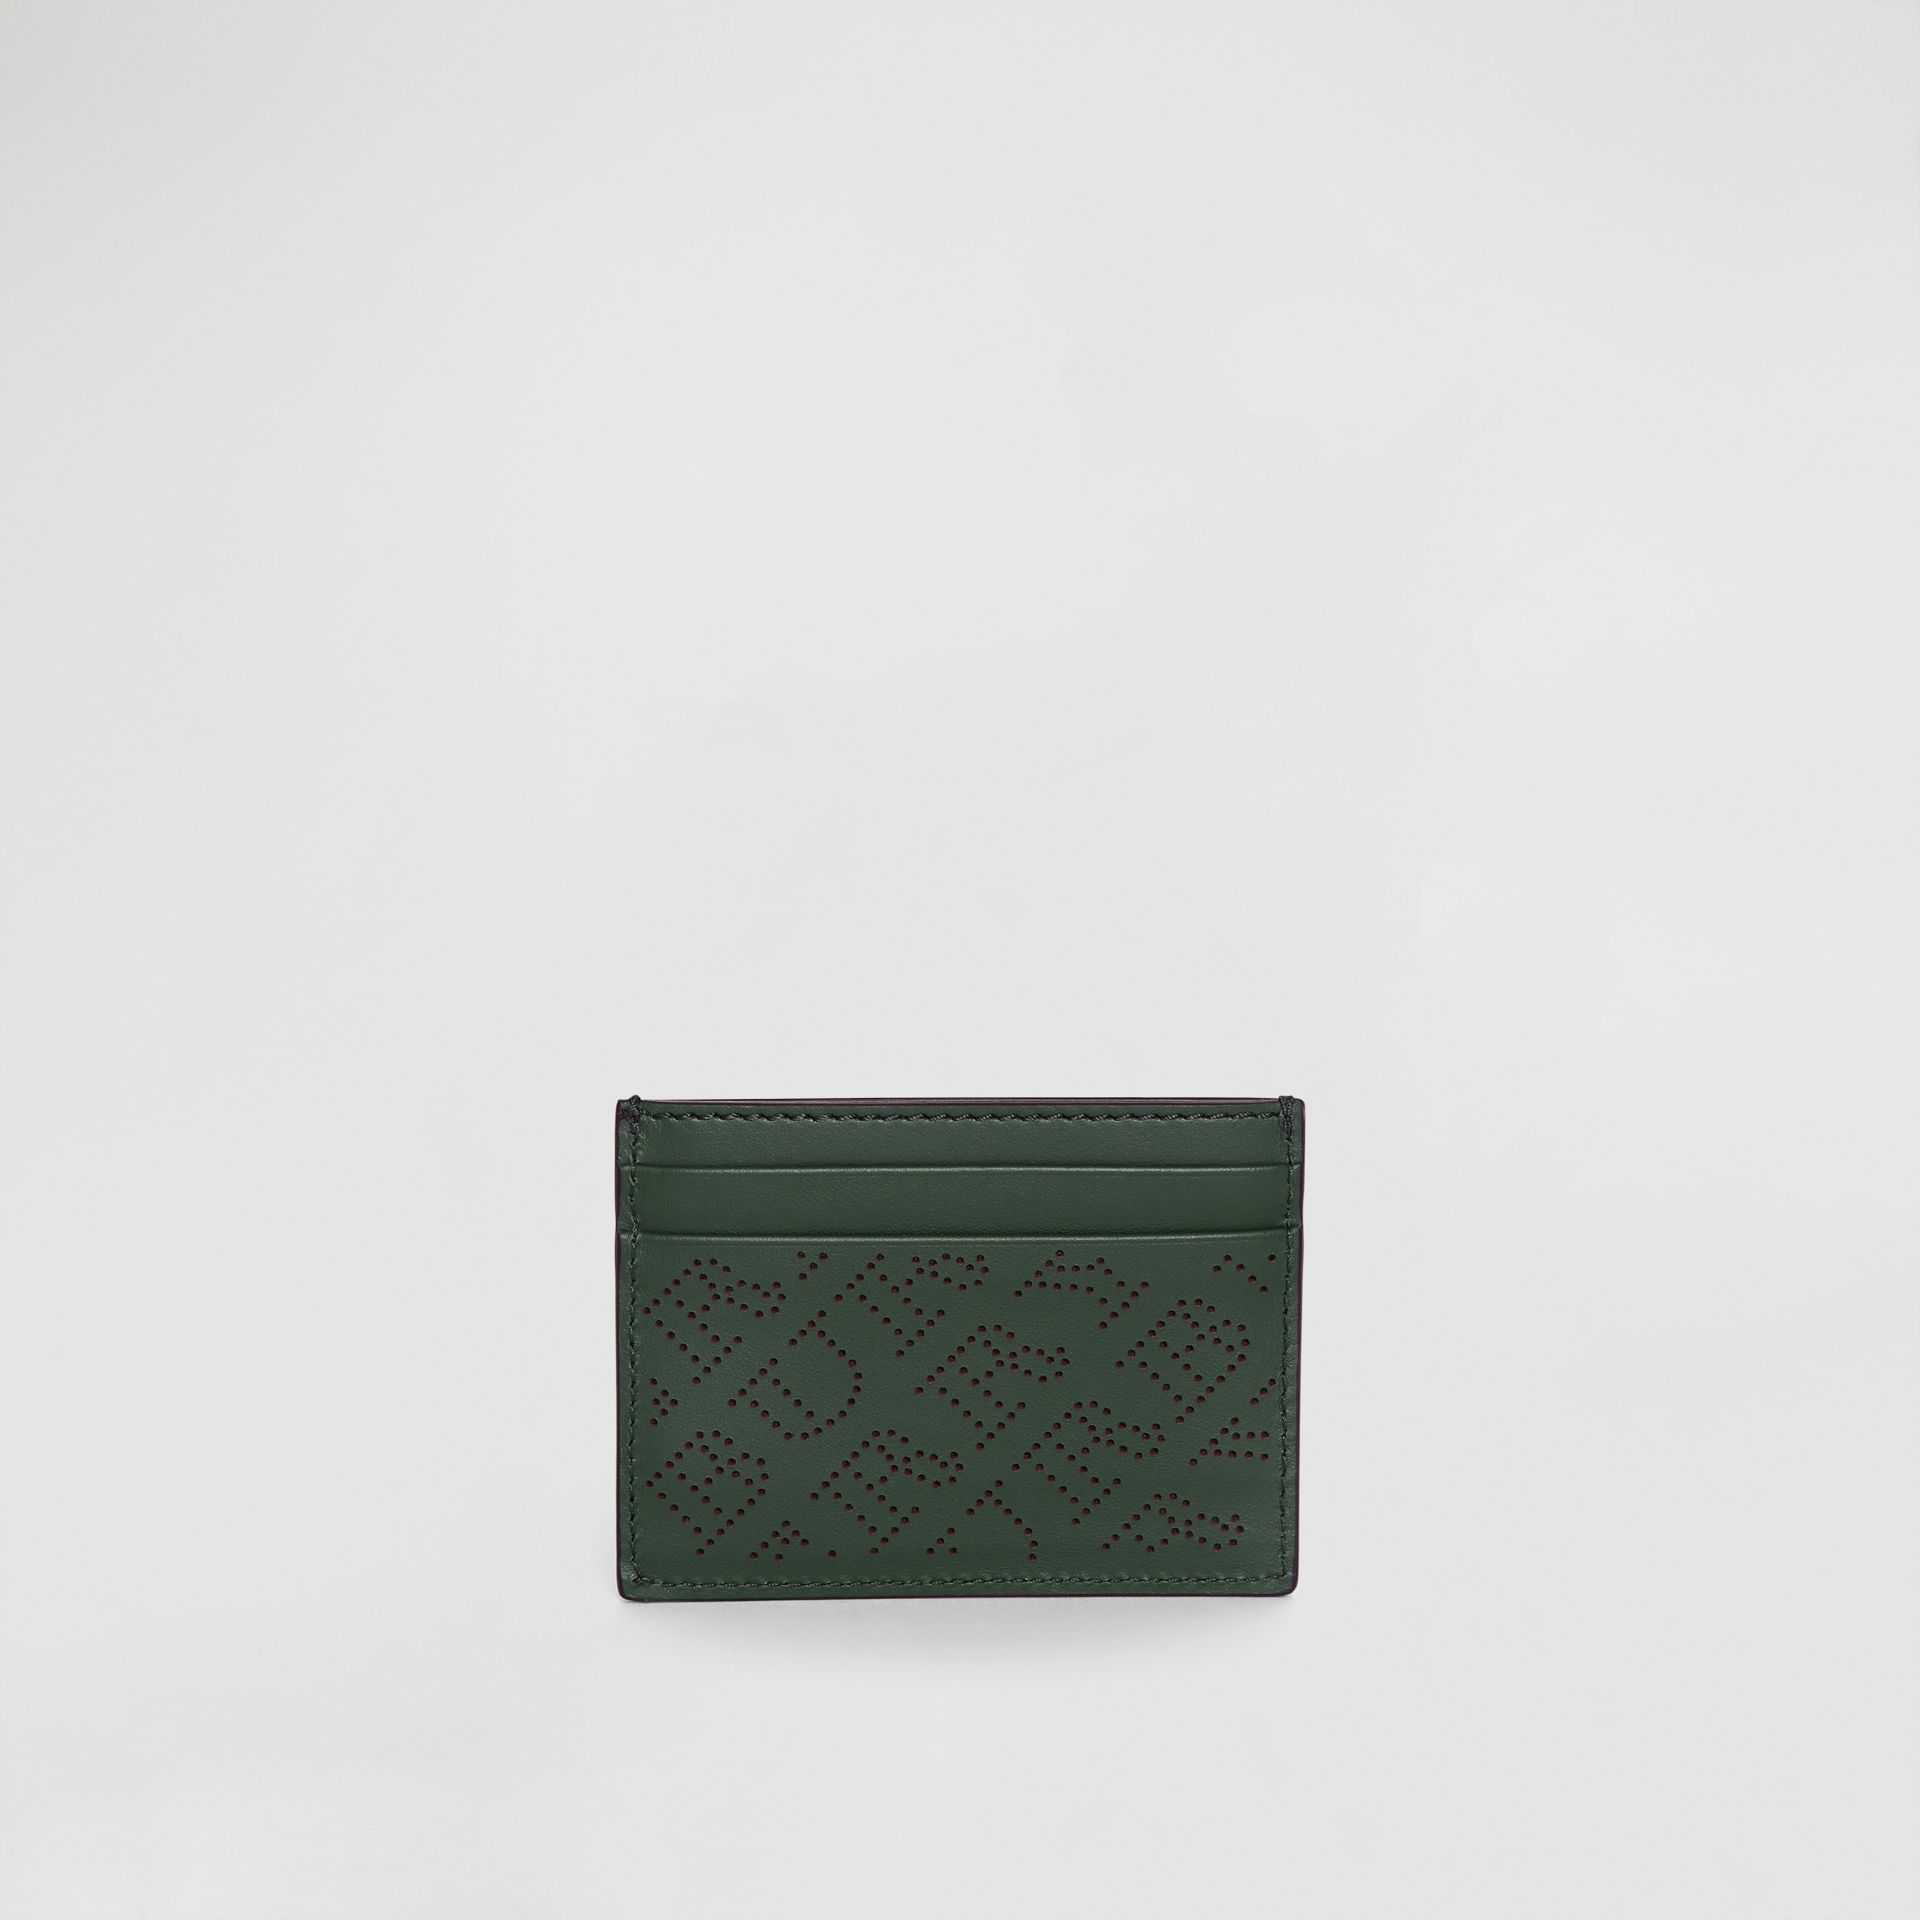 Perforated Logo Leather Card Case in Vintage Green - Women | Burberry - gallery image 5